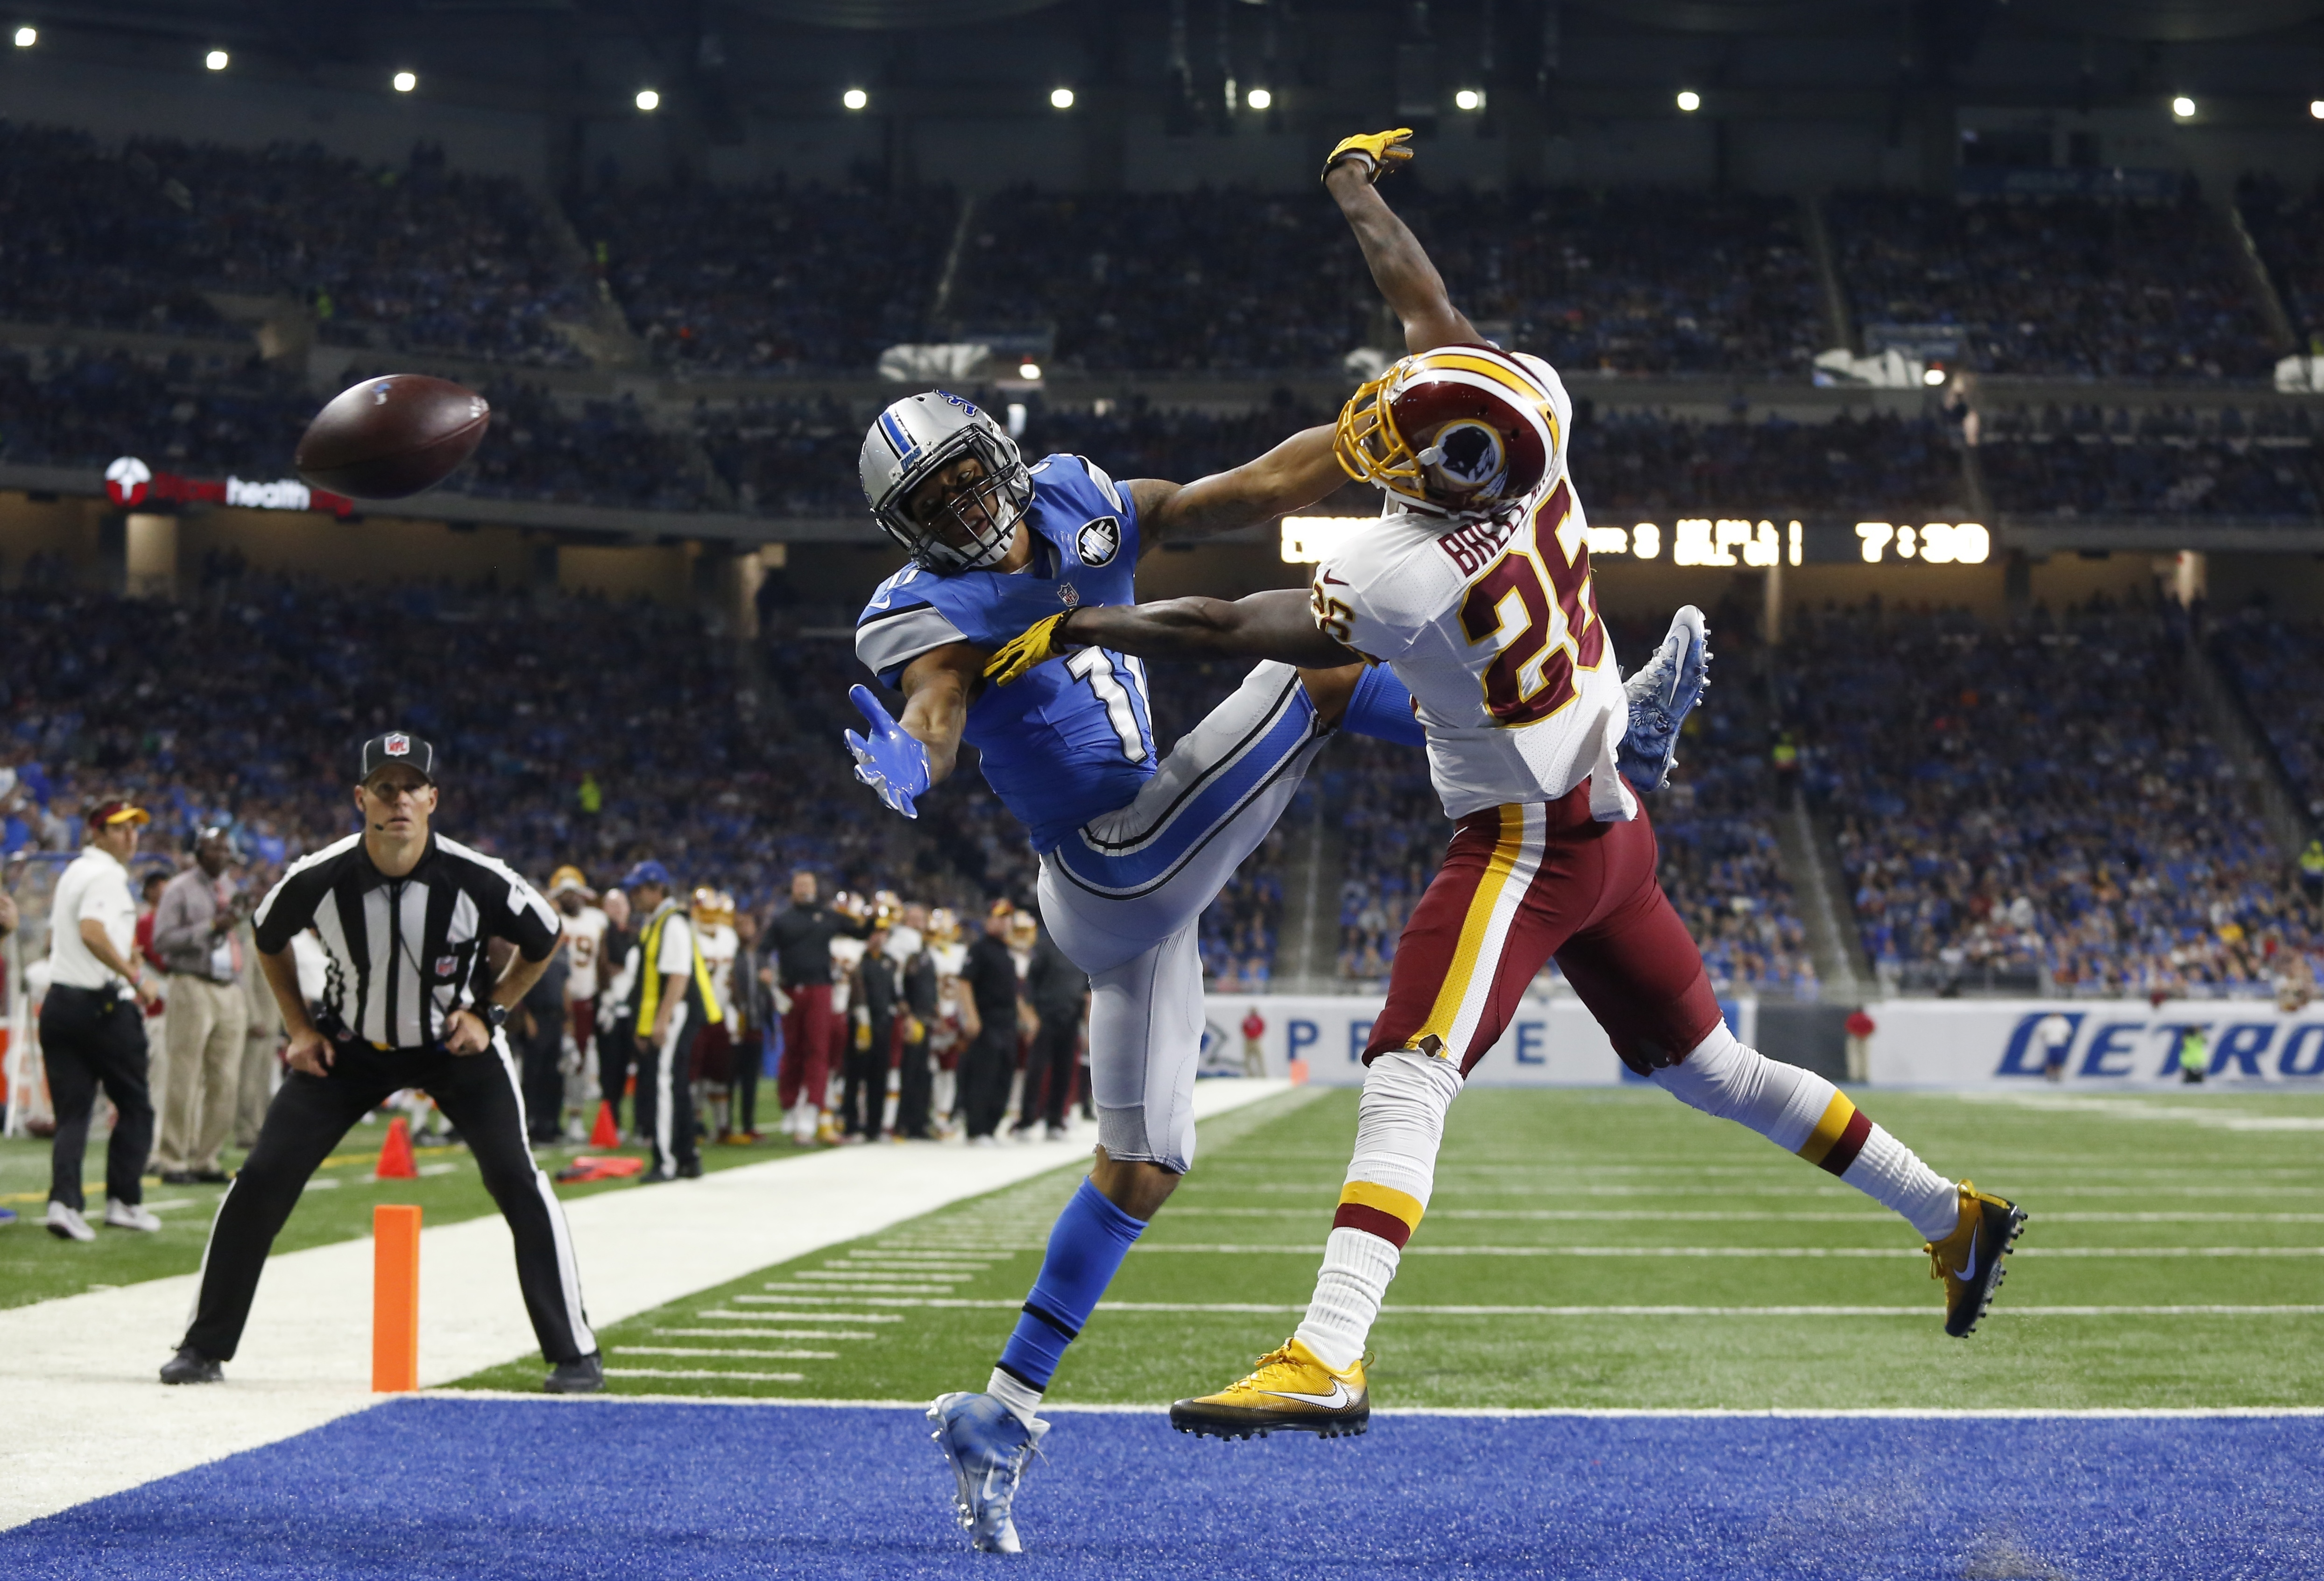 Washington Redskins cornerback Bashaud Breeland (26) deflects a pass intended for Detroit Lions wide receiver Marvin Jones (11) during the second half of an NFL football game, Sunday, Oct. 23, 2016 in Detroit. (AP Photo/Duane Burleson)